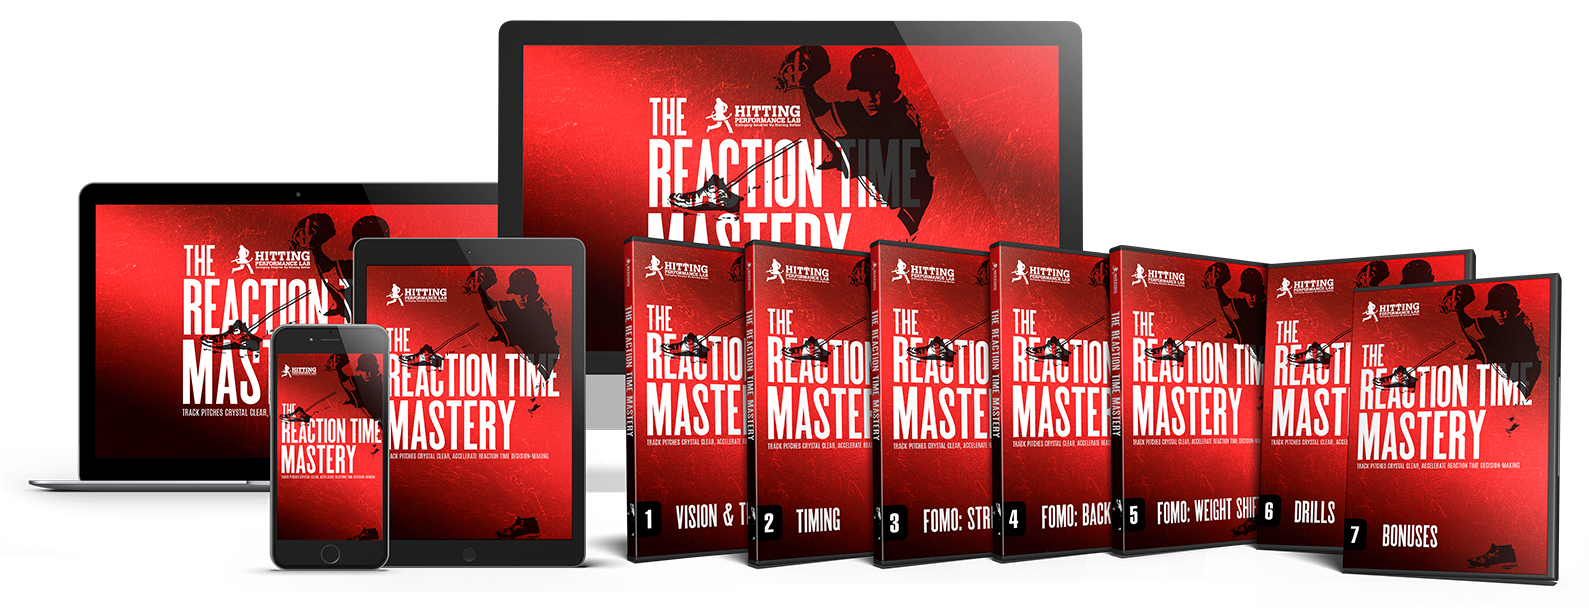 The Reaction Time Mastery online video mini-course